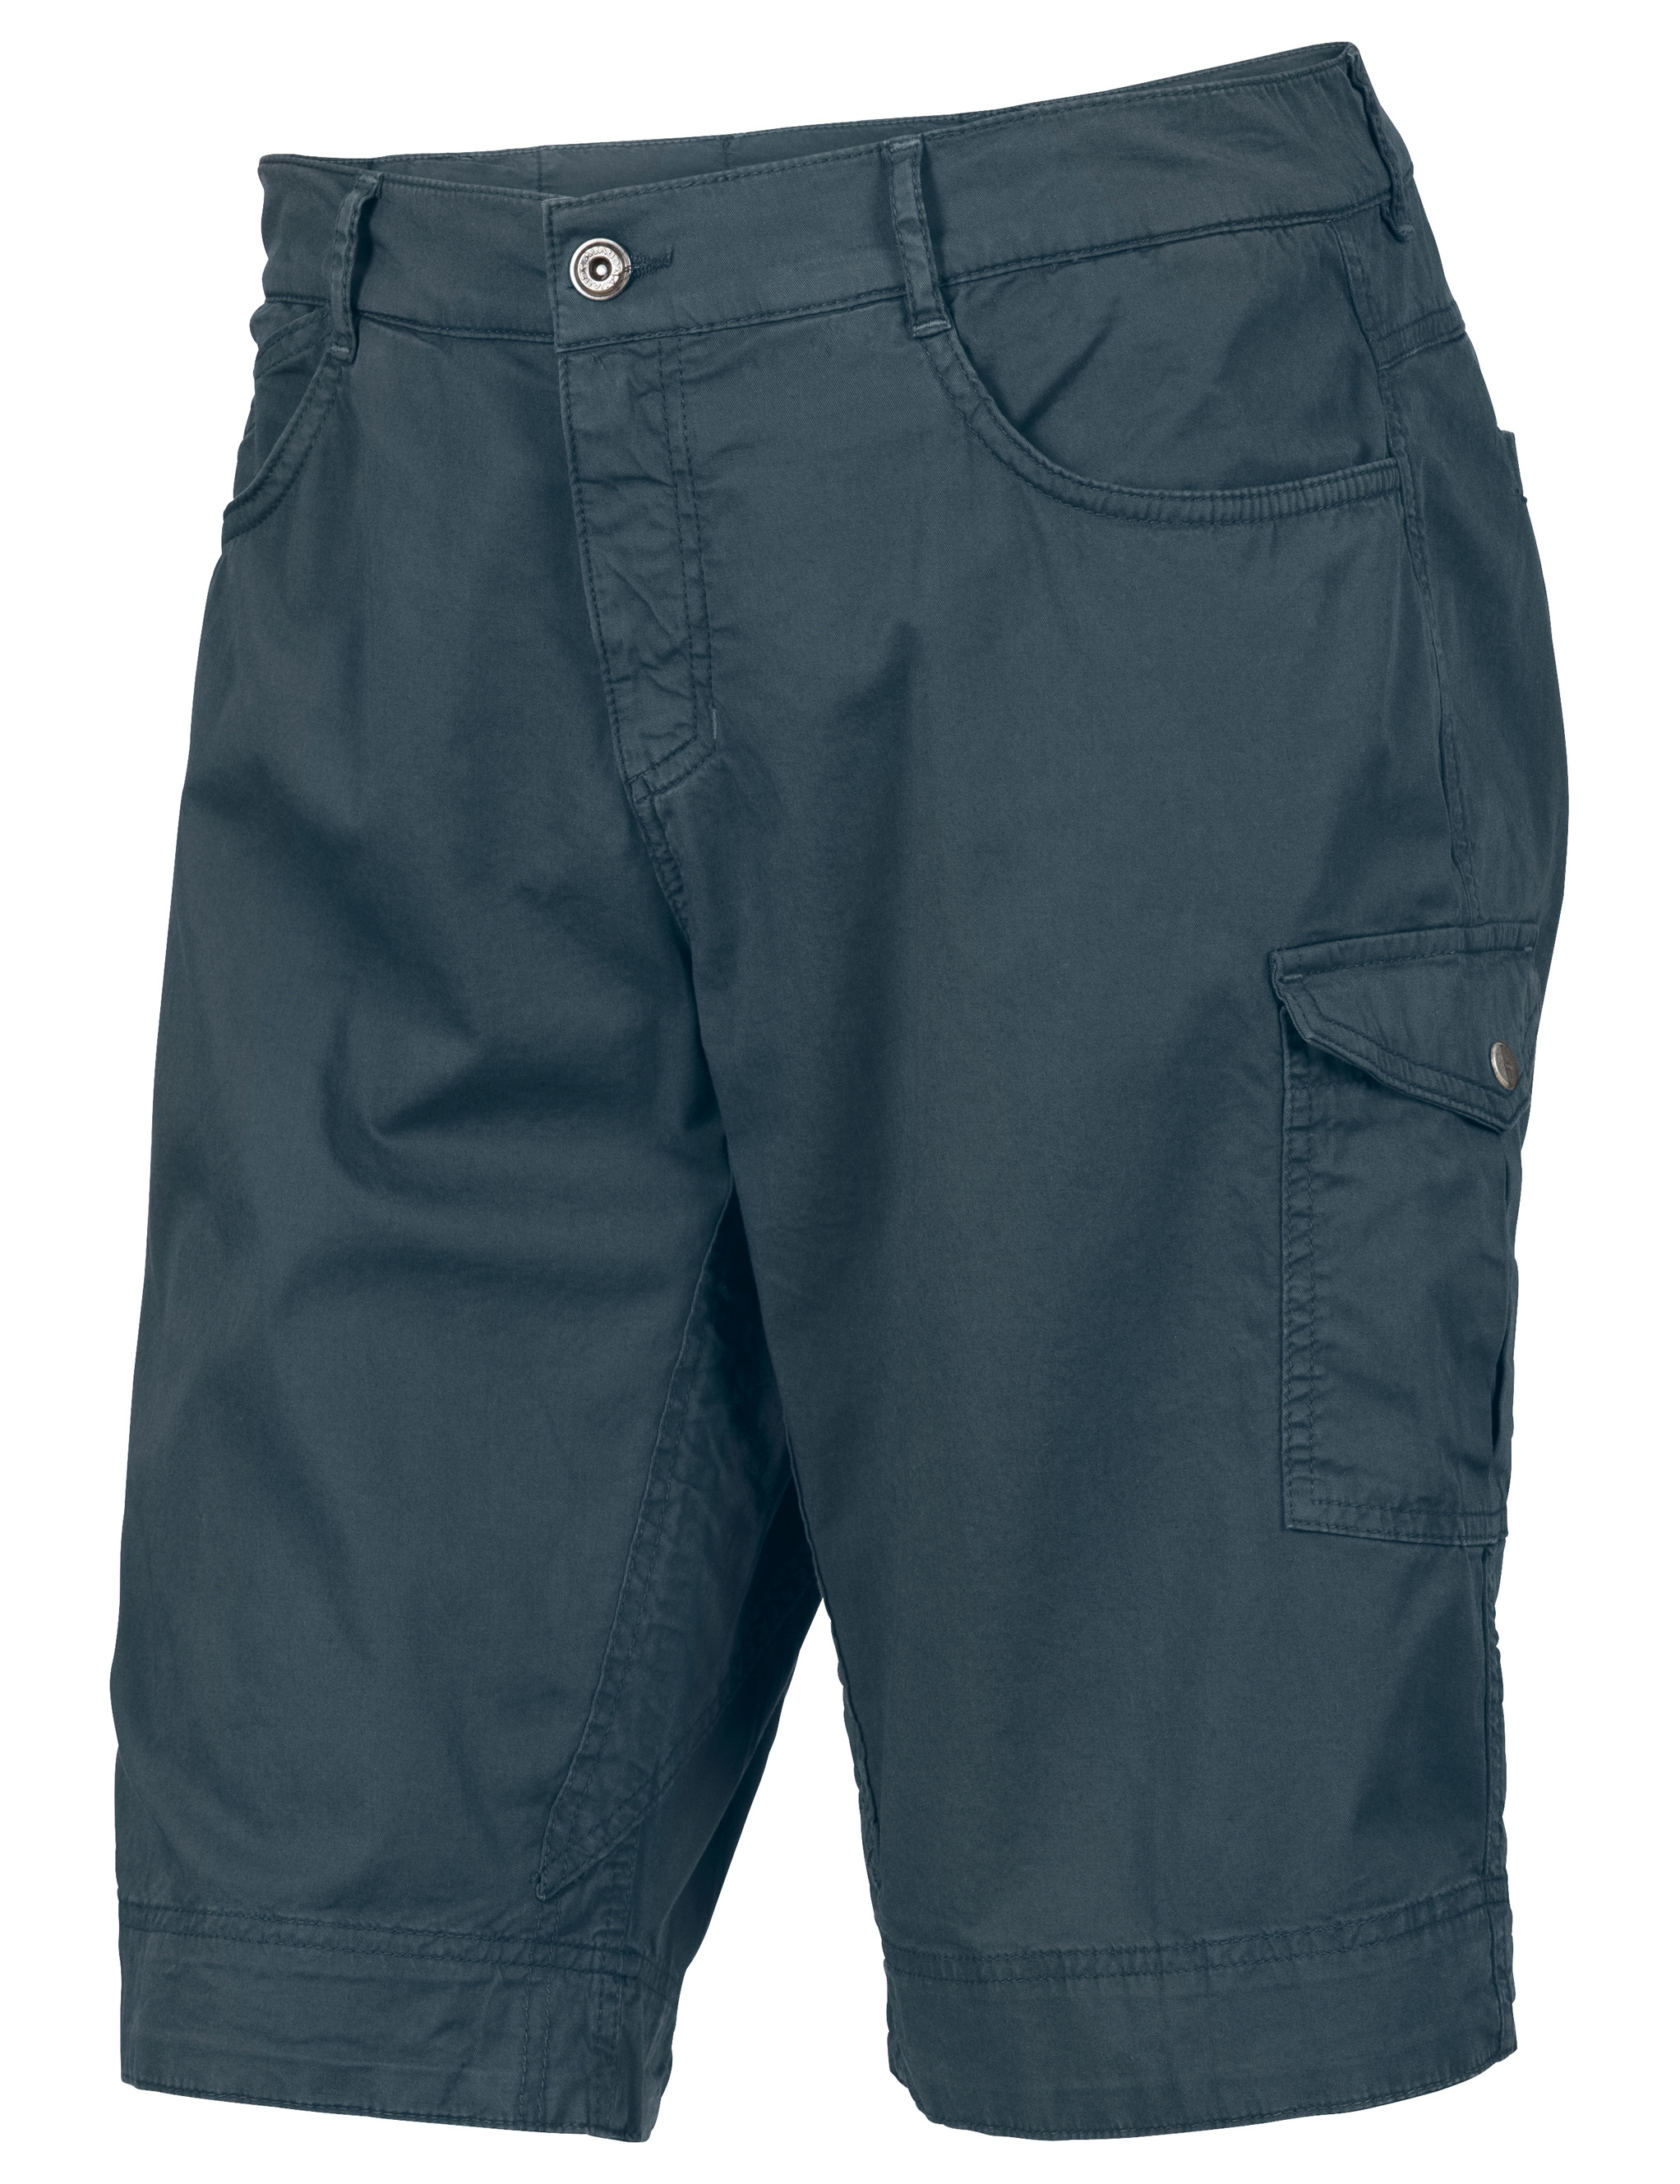 VAUDE Men´s Cyclist Shorts dark steel Größe L - schneider-sports